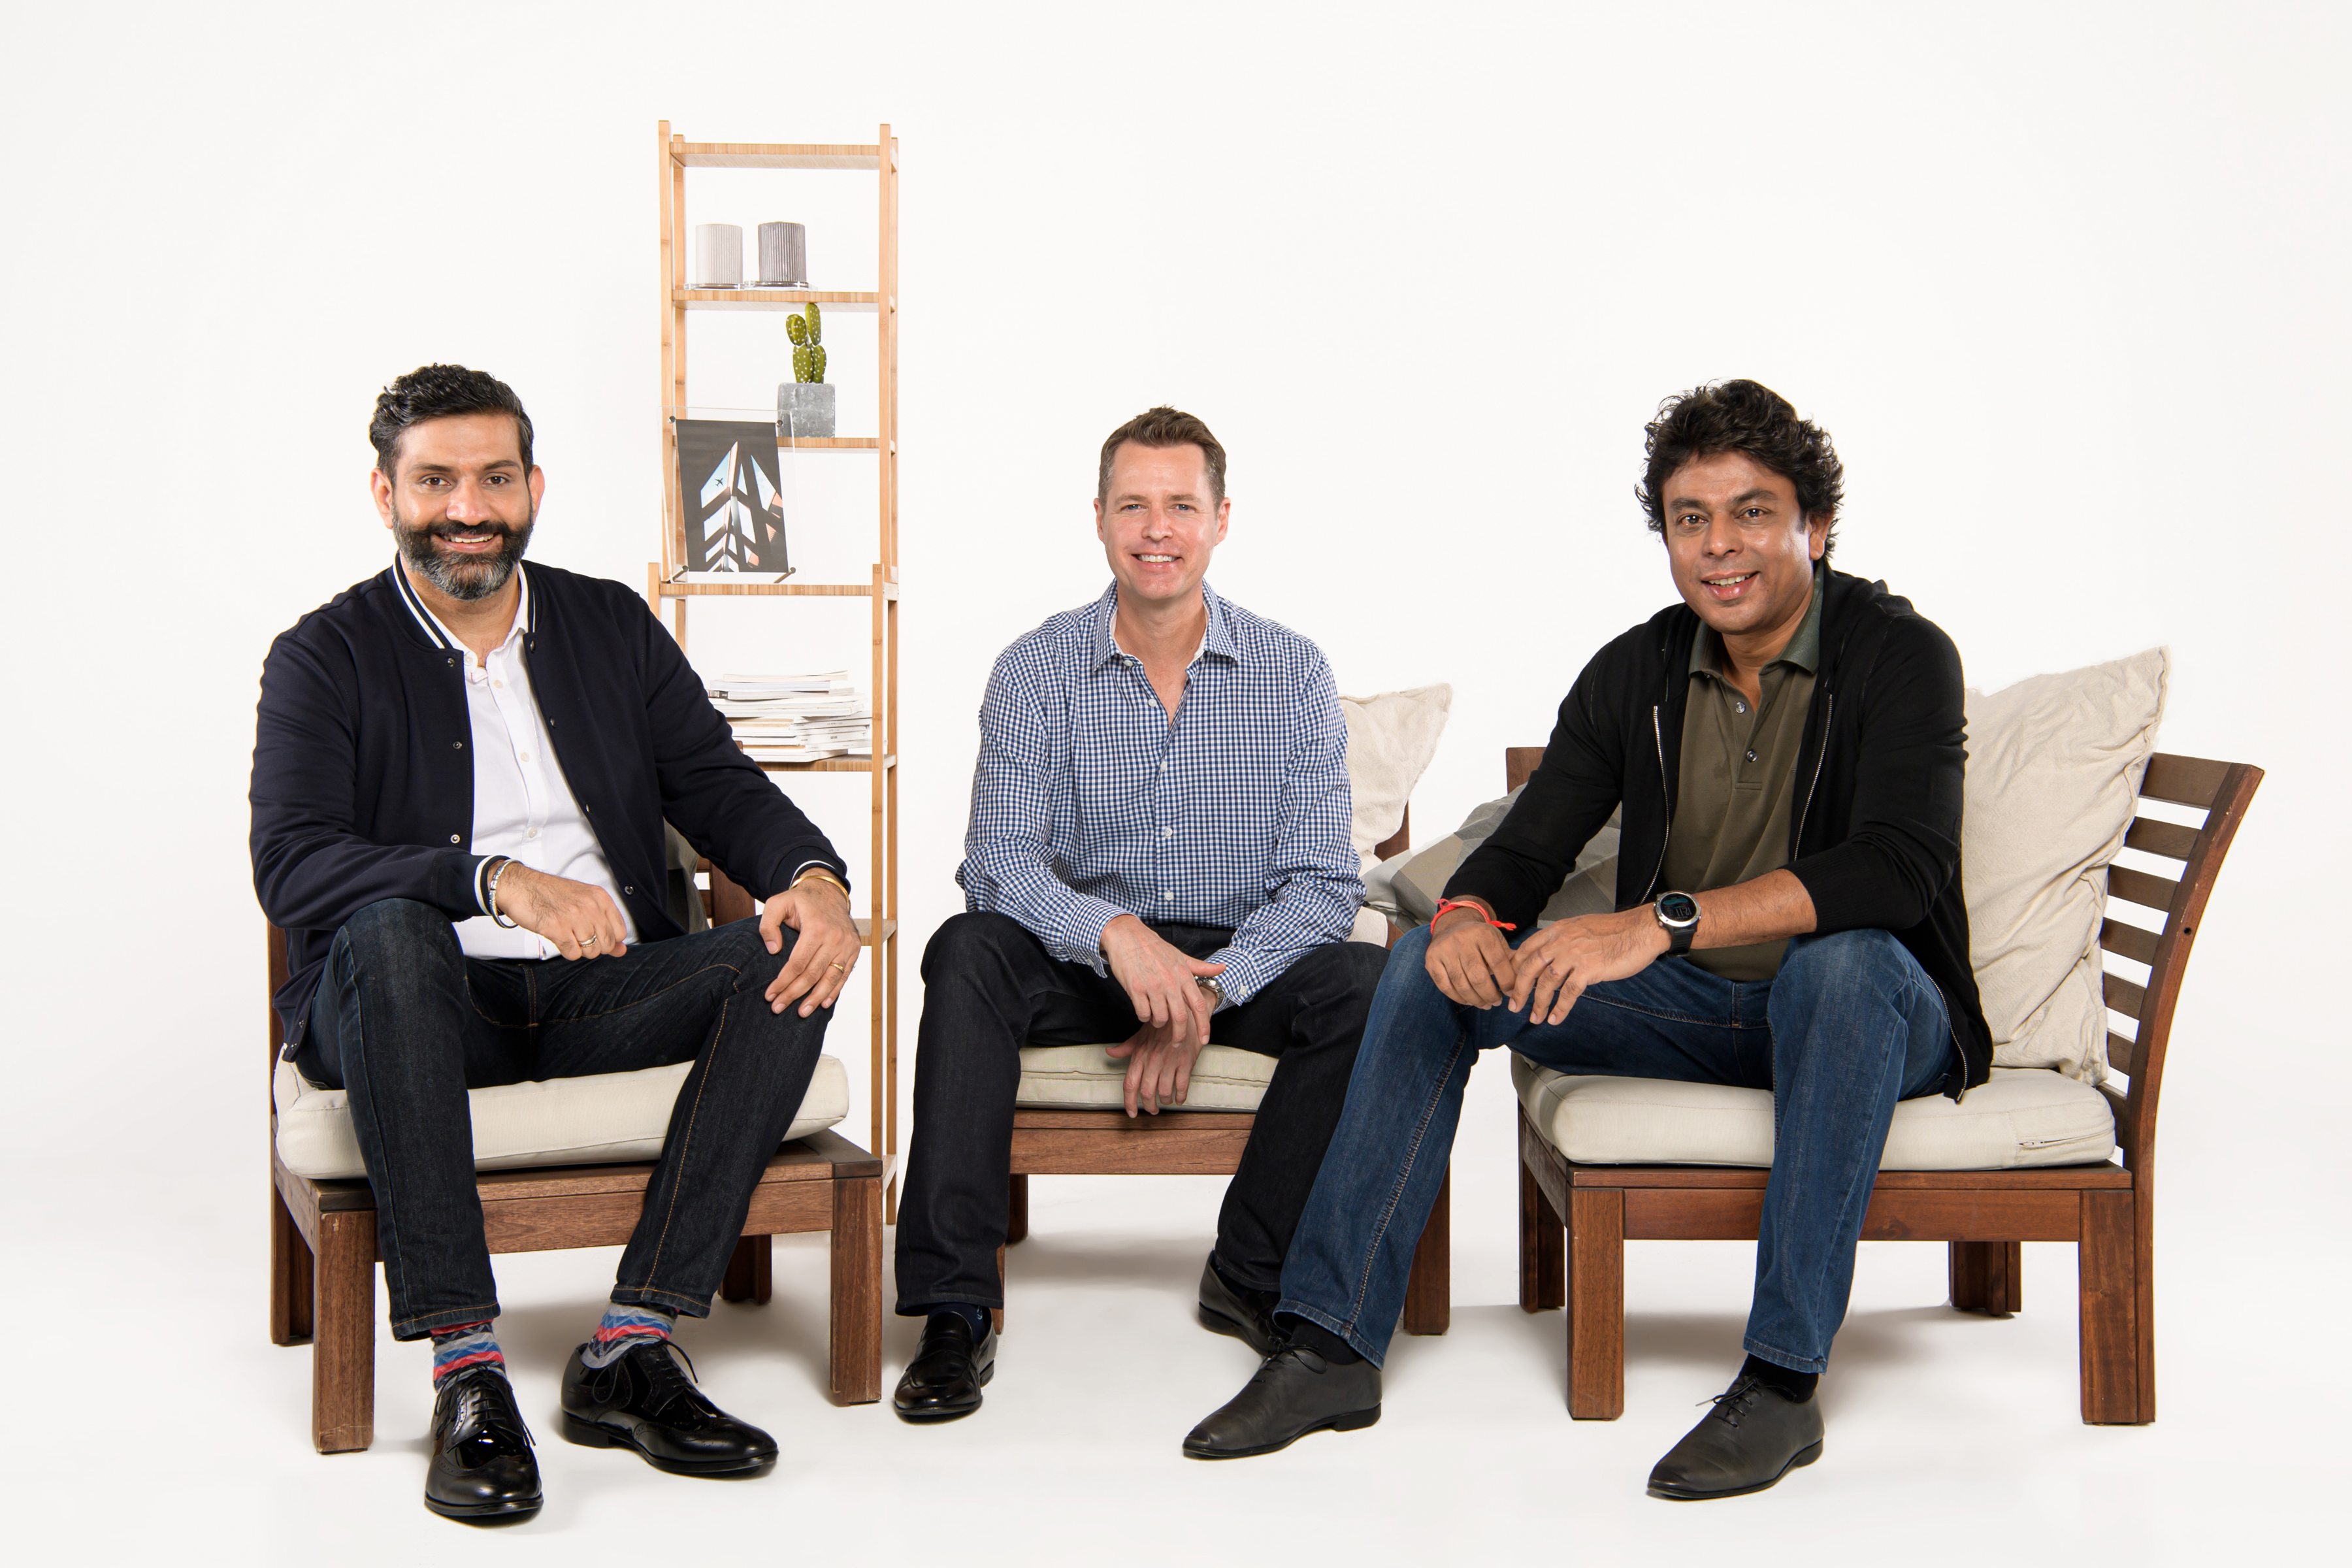 A group photo of Jungle Ventures' team:(From left to right) Jungle Ventures' founding partner Amit Anand, managing partner David Gowdey and founding partner Anurag Srivastava